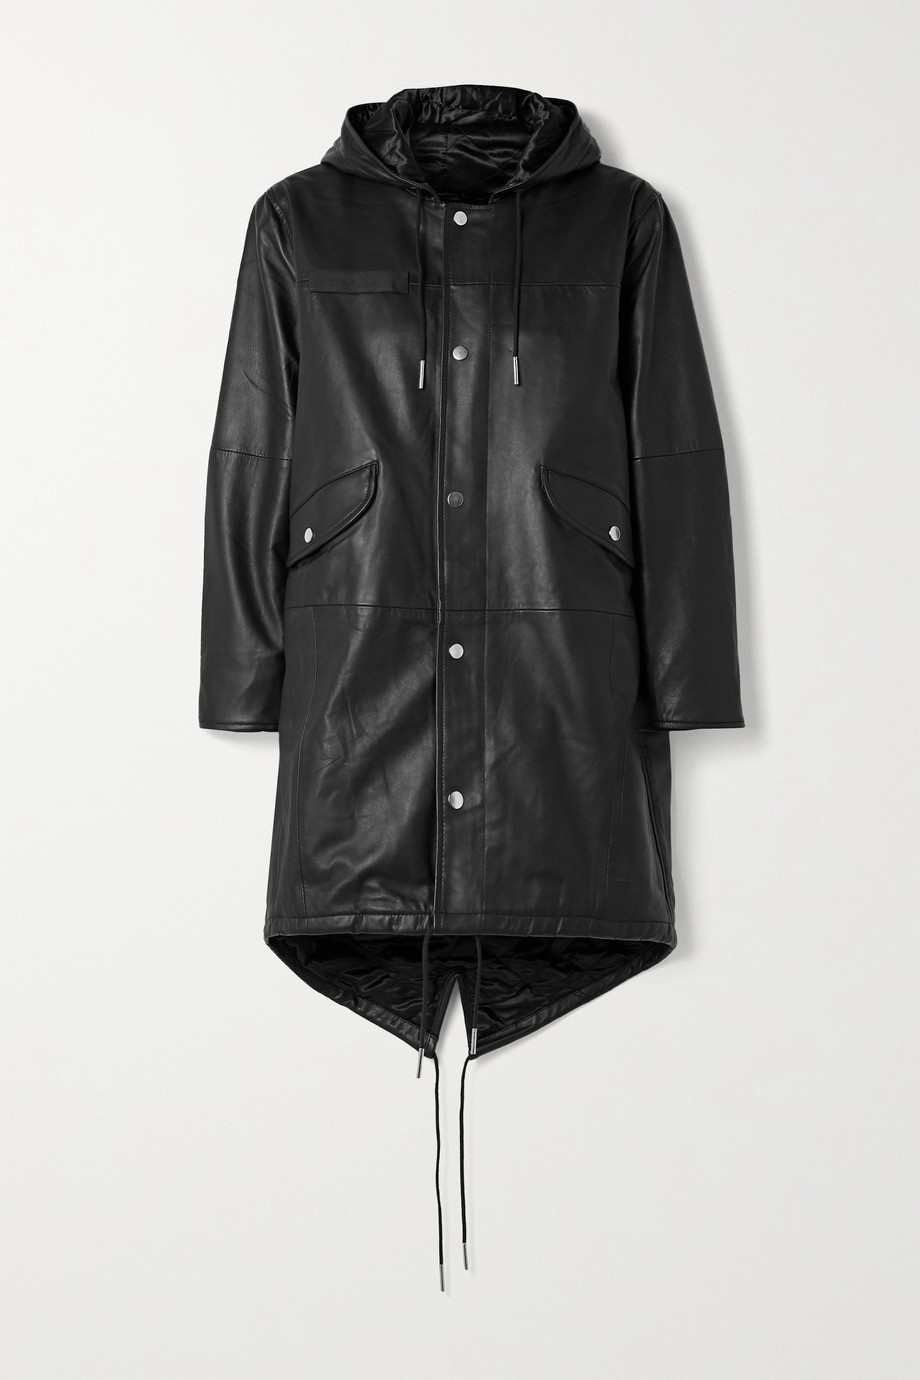 Deadwood Payne hooded leather parka